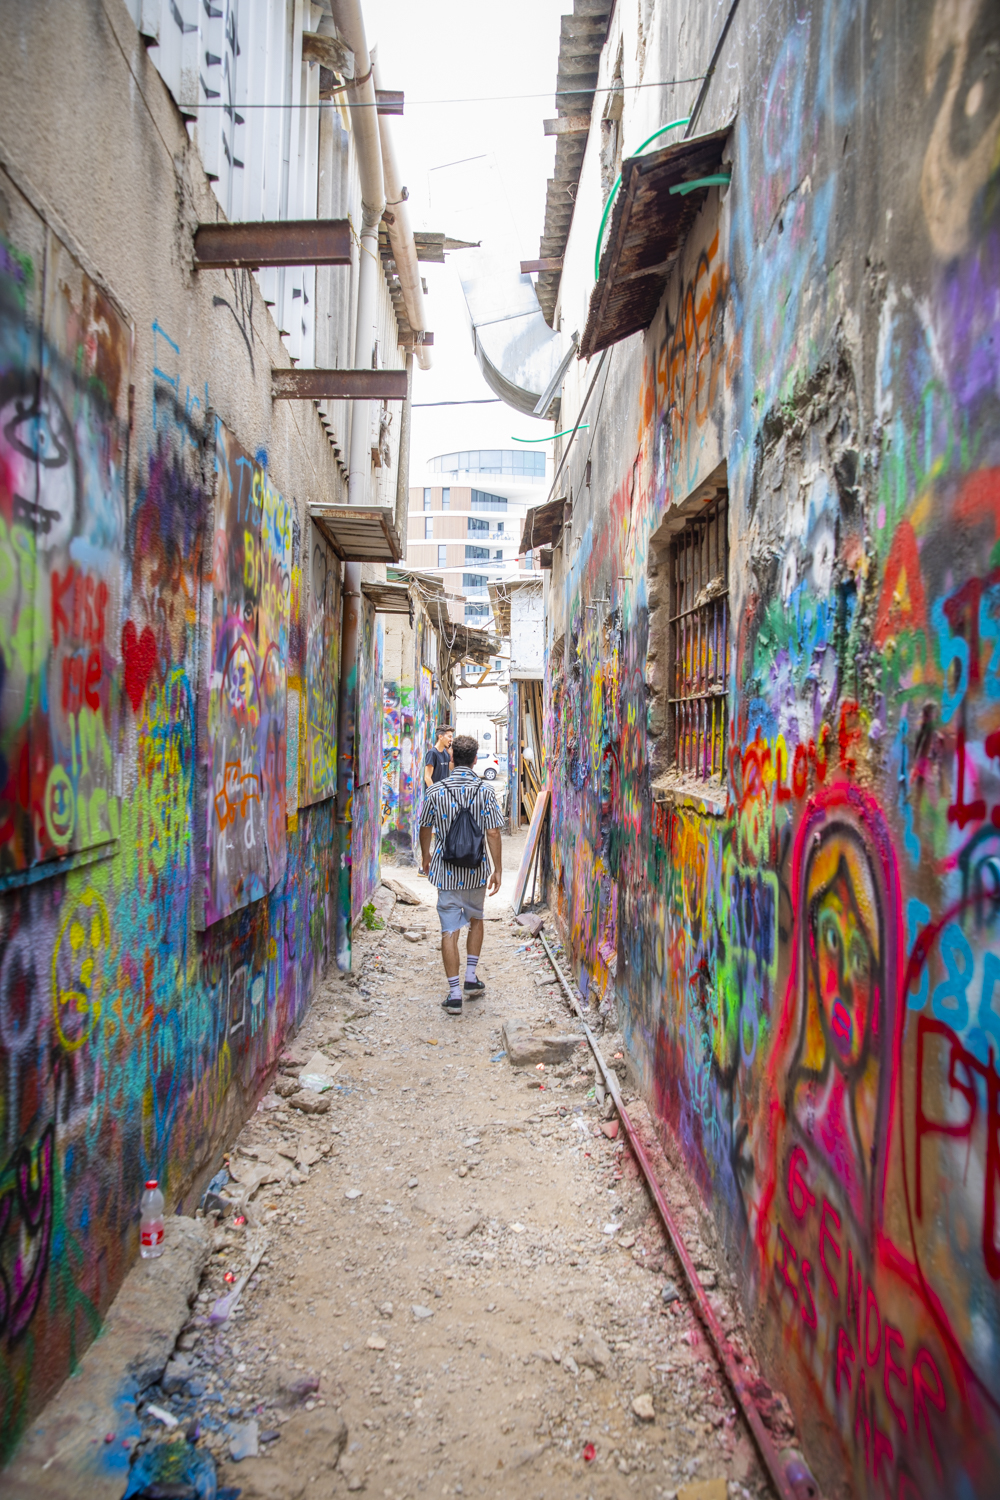 Niro Trip ( @nirotrip ) leads a graffiti tour through the streets and allies of Tel Aviv. Going along with the whole modern revolution in Israel, the creative art scenes have also been thriving in the country.